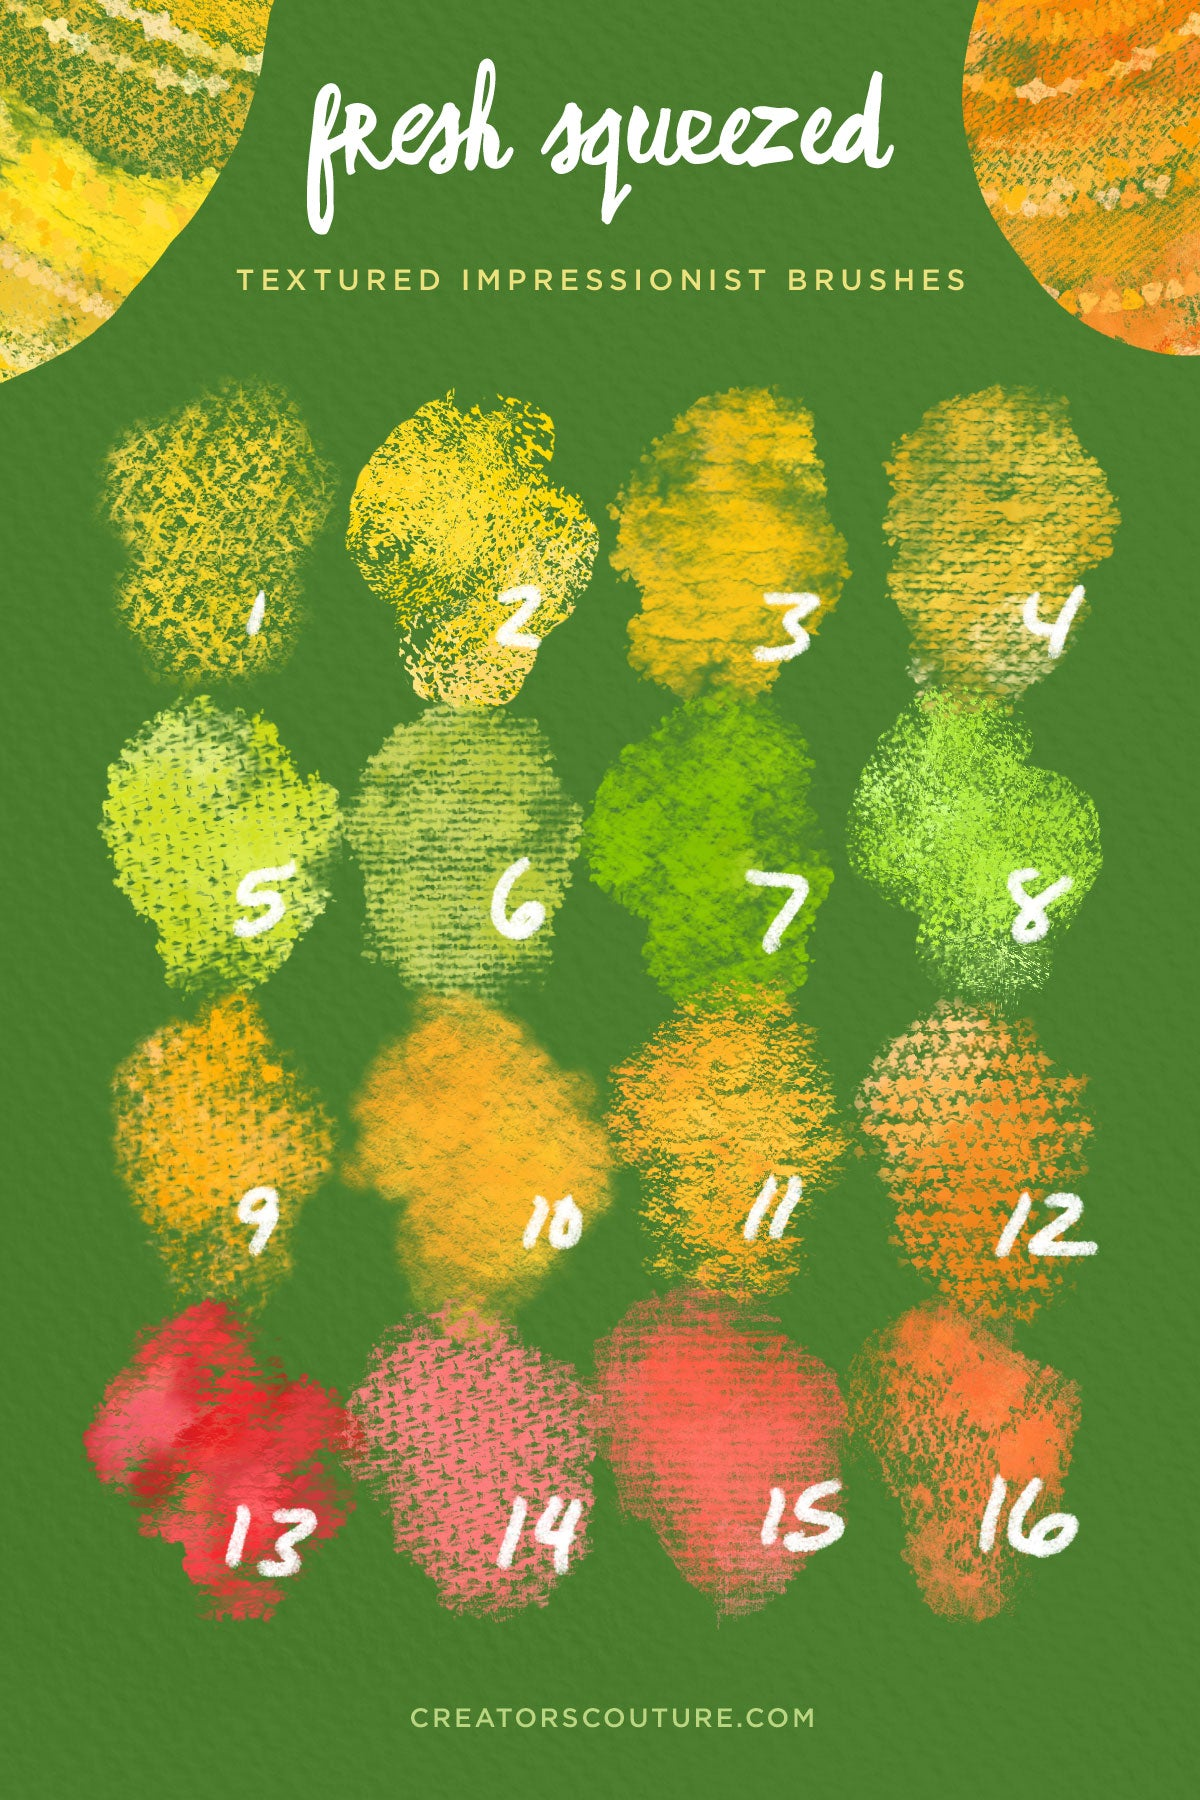 Citrus Illustration & Pattern Photoshop Brush & Color Palette Studio, textured impressionist brushes